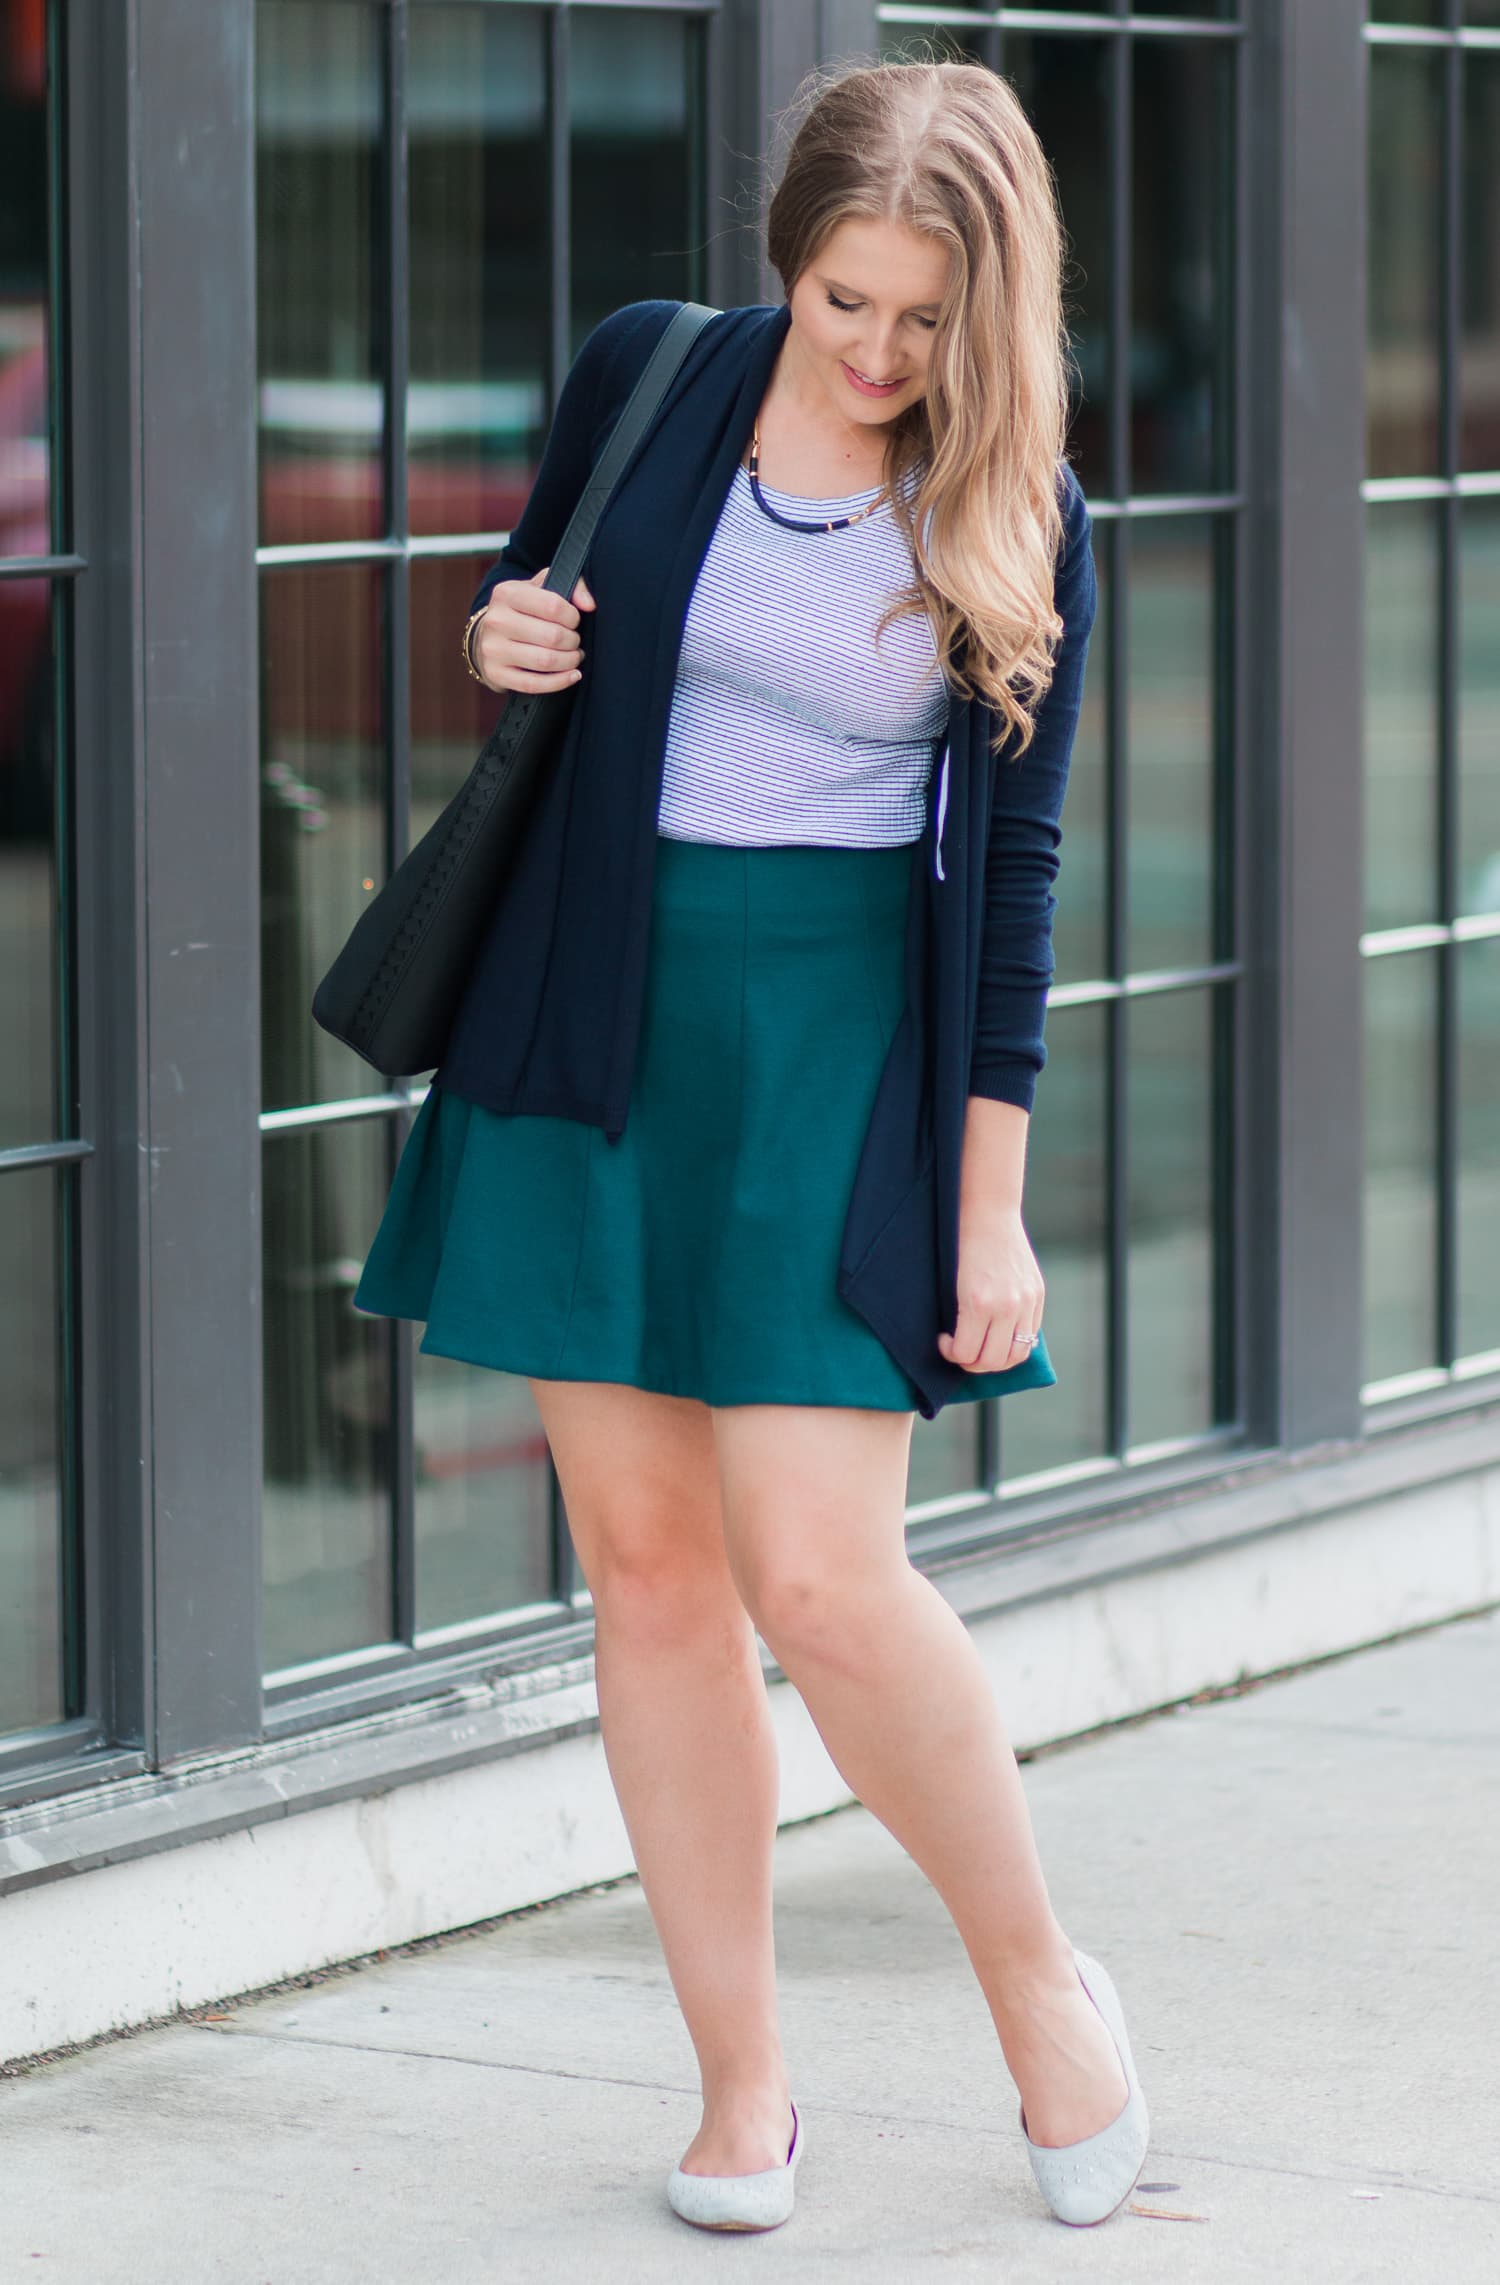 Casual fall outfit idea featuring Zara navy draped cardigan sweater, navy and white striped halter top, Urban Outfitters hunter green skater skirt, UGG grey ballet flats, Stella & Dot black leather and gold collar necklace, gold cuff bracelet, and black leather tassel hobo bag styled by fashion blogger Ashley Brooke Nicholas.